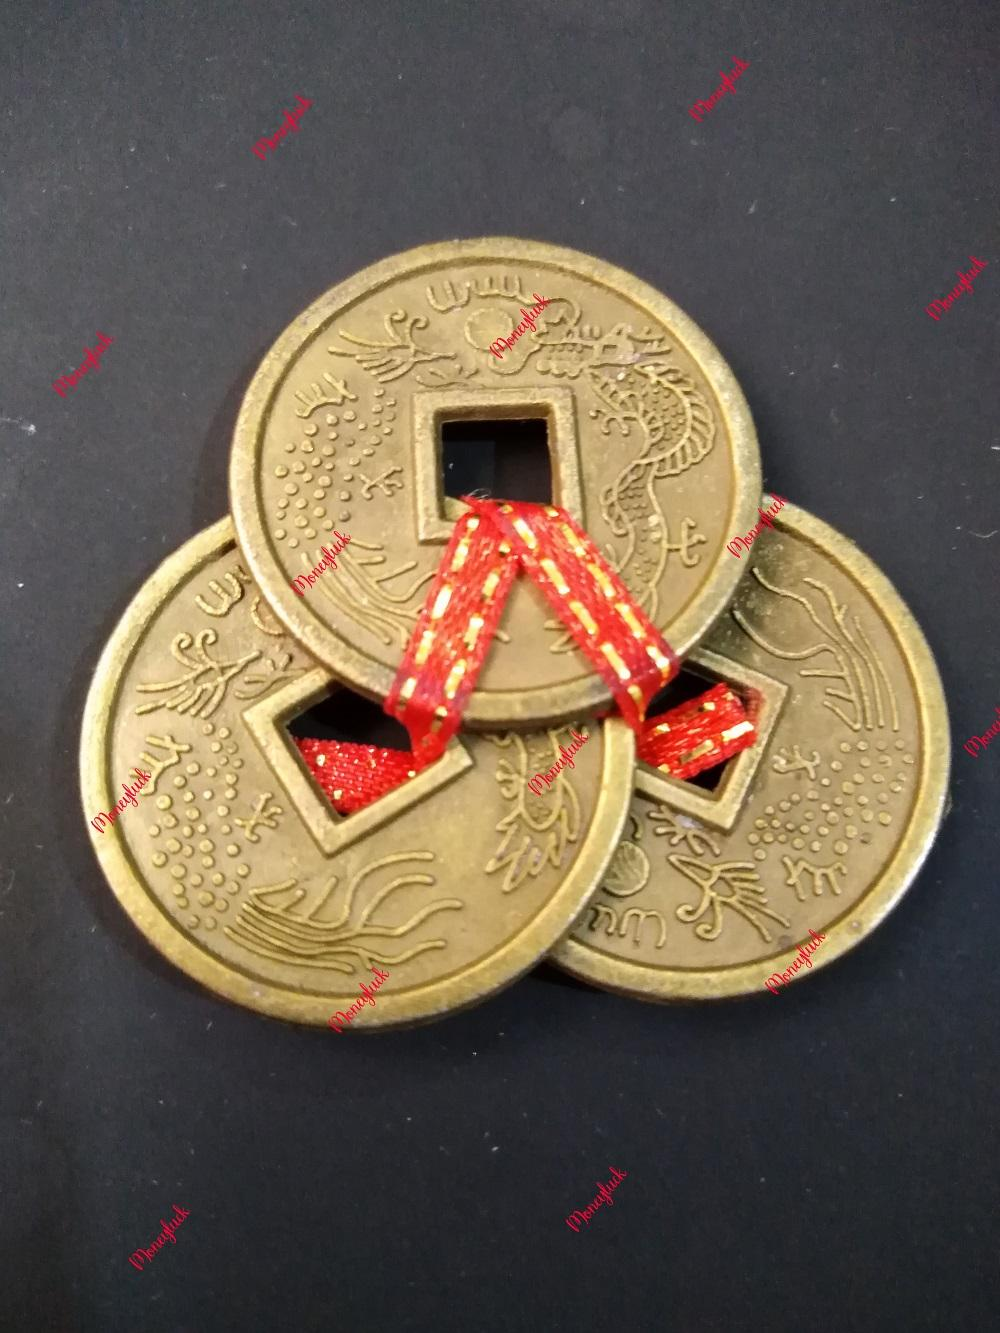 3 Chinese Lucky Coins tied in Red String